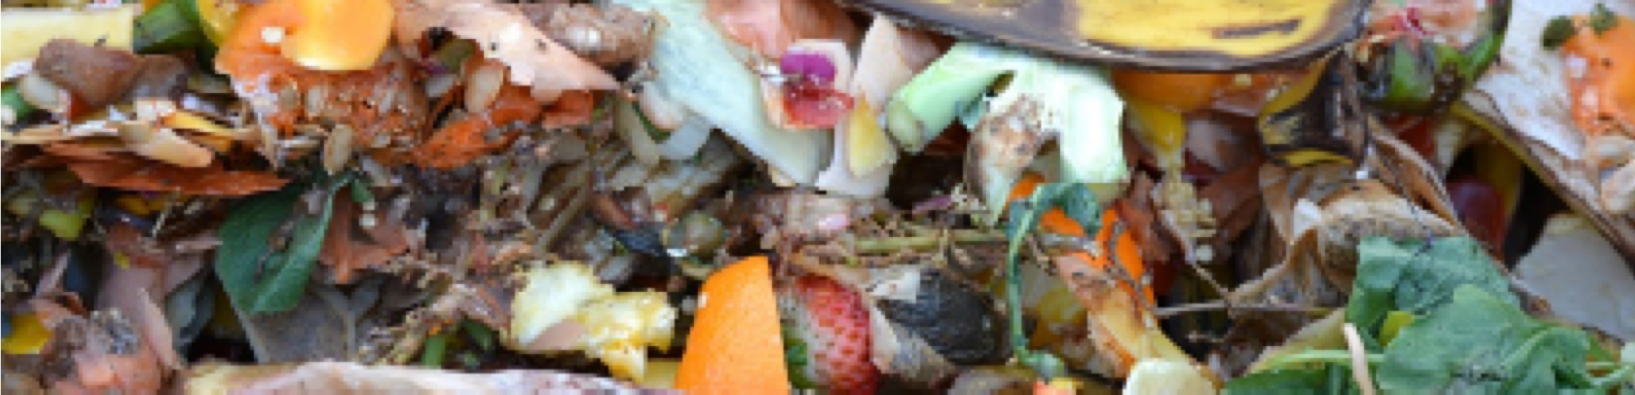 Image of compost